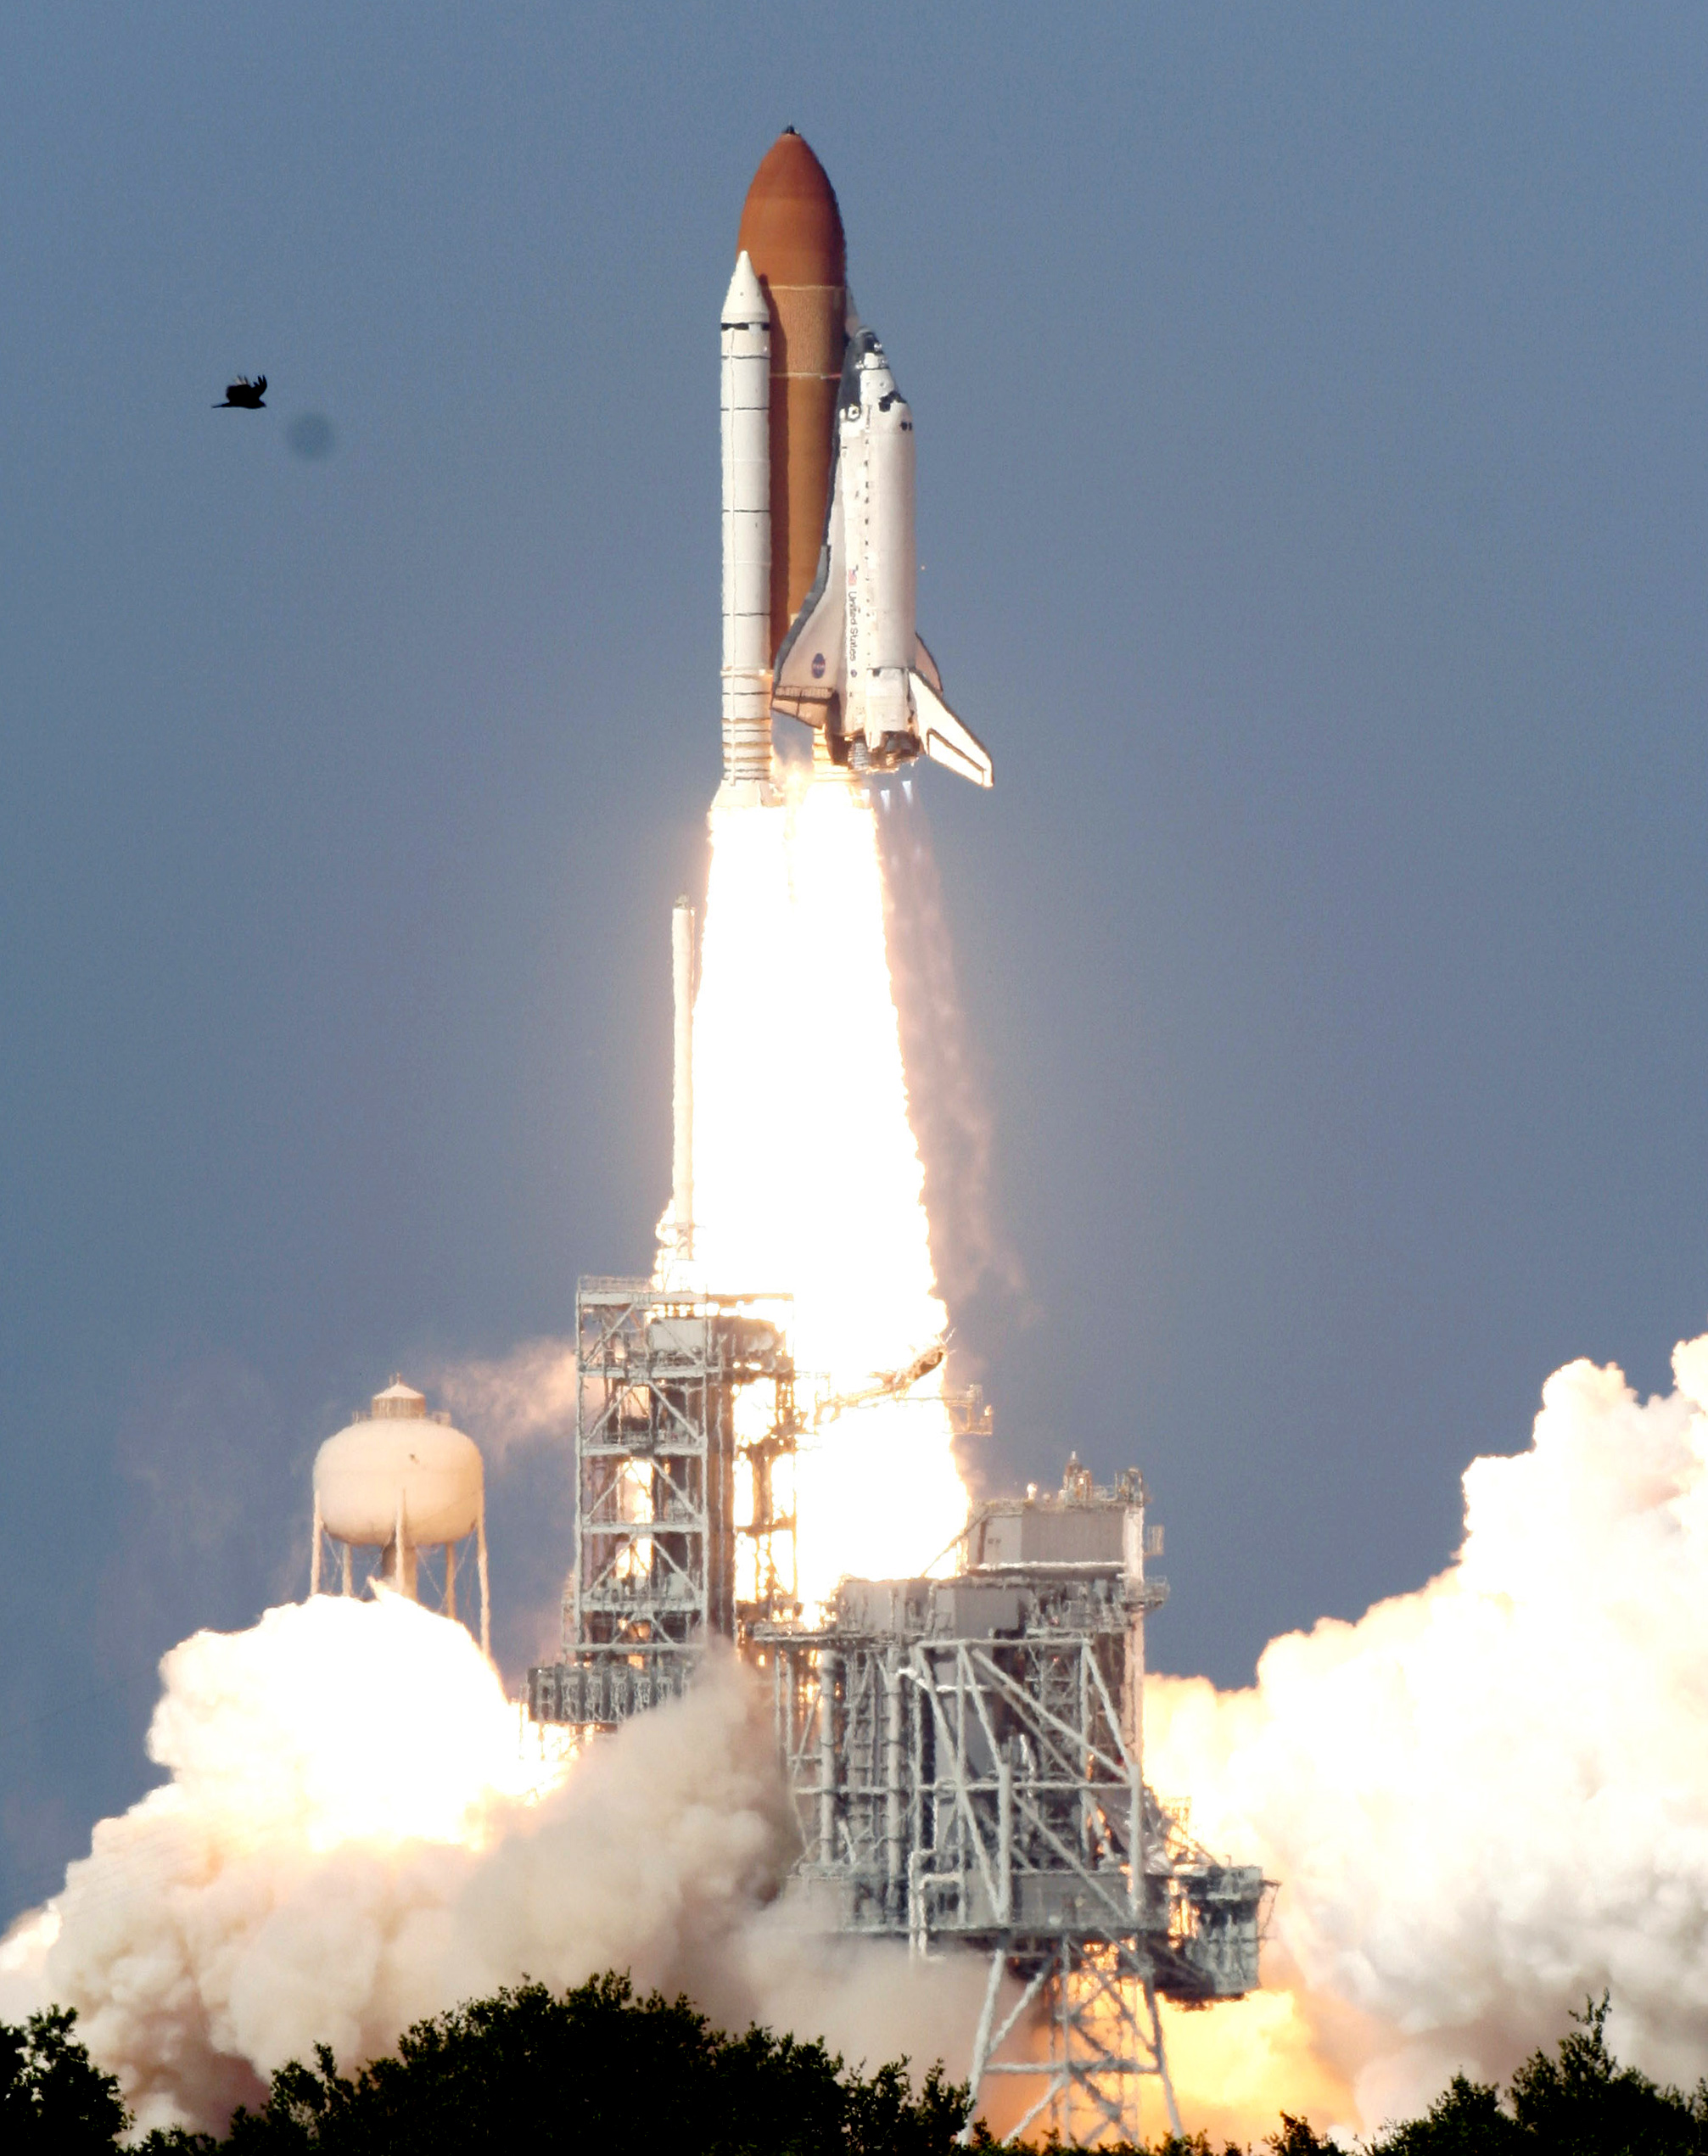 The Space Shuttle Discovery lifts off at the Kennedy Space Center in Cape Canaveral, Fla. on Saturday, May 31, 2008. The shuttle's trip to the international space station should take two days.